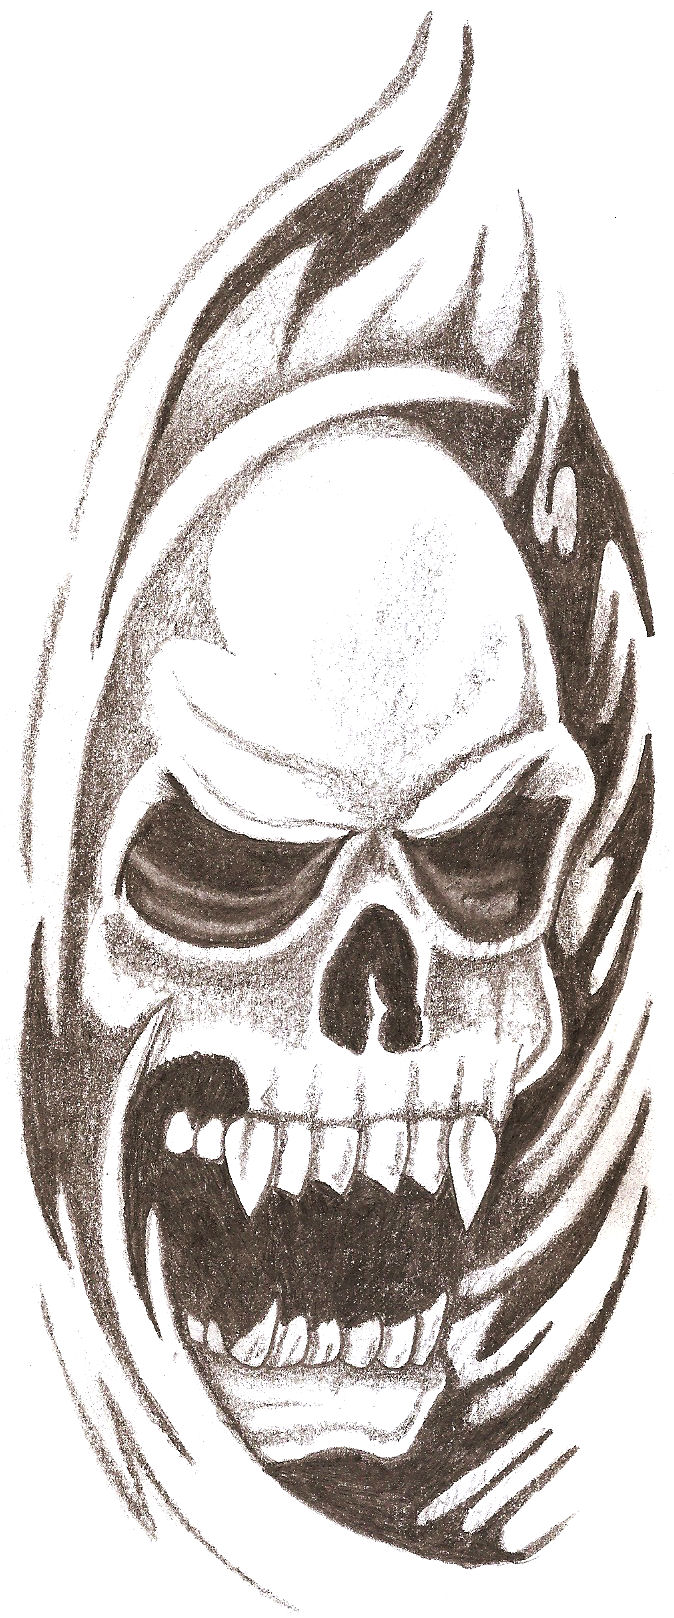 cool skull drawings - Video Search Engine at Search.com